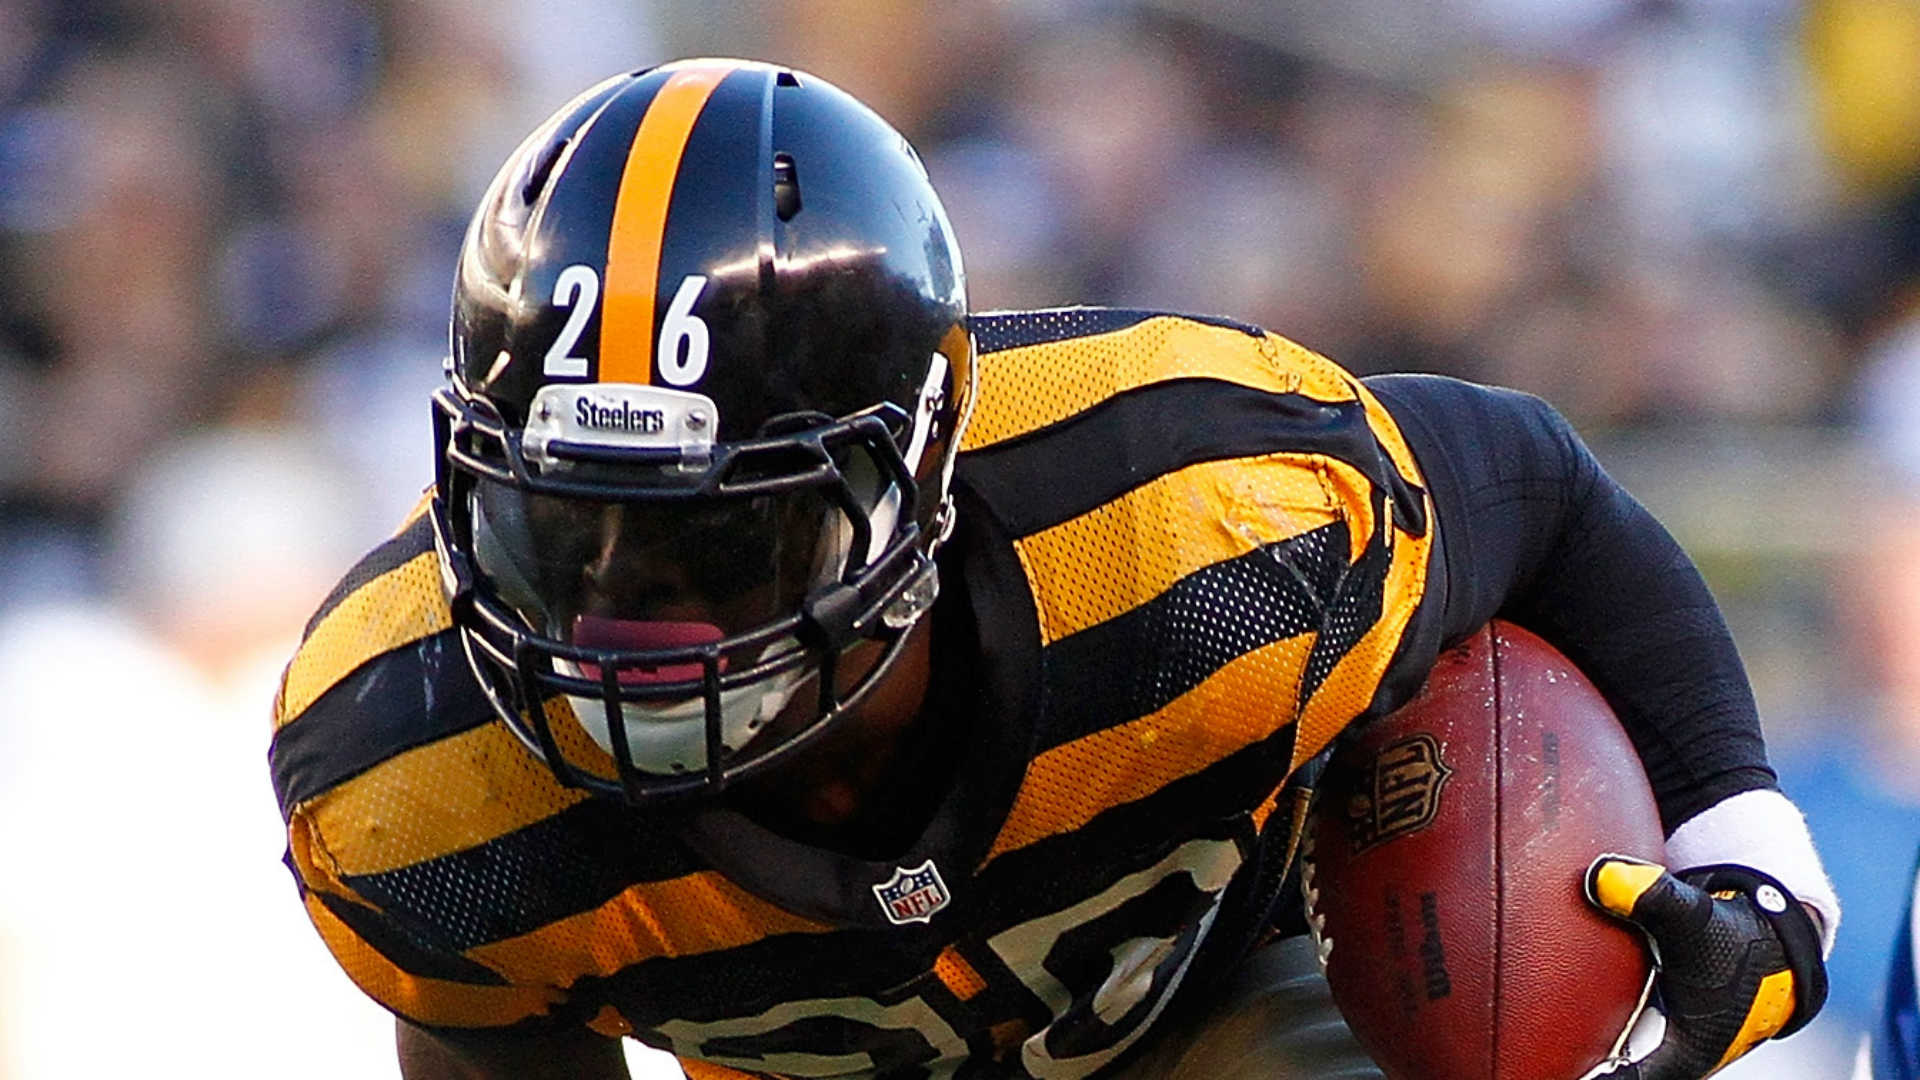 Steelers RB Le'Veon Bell undergoes surgery, per his Snapchat account